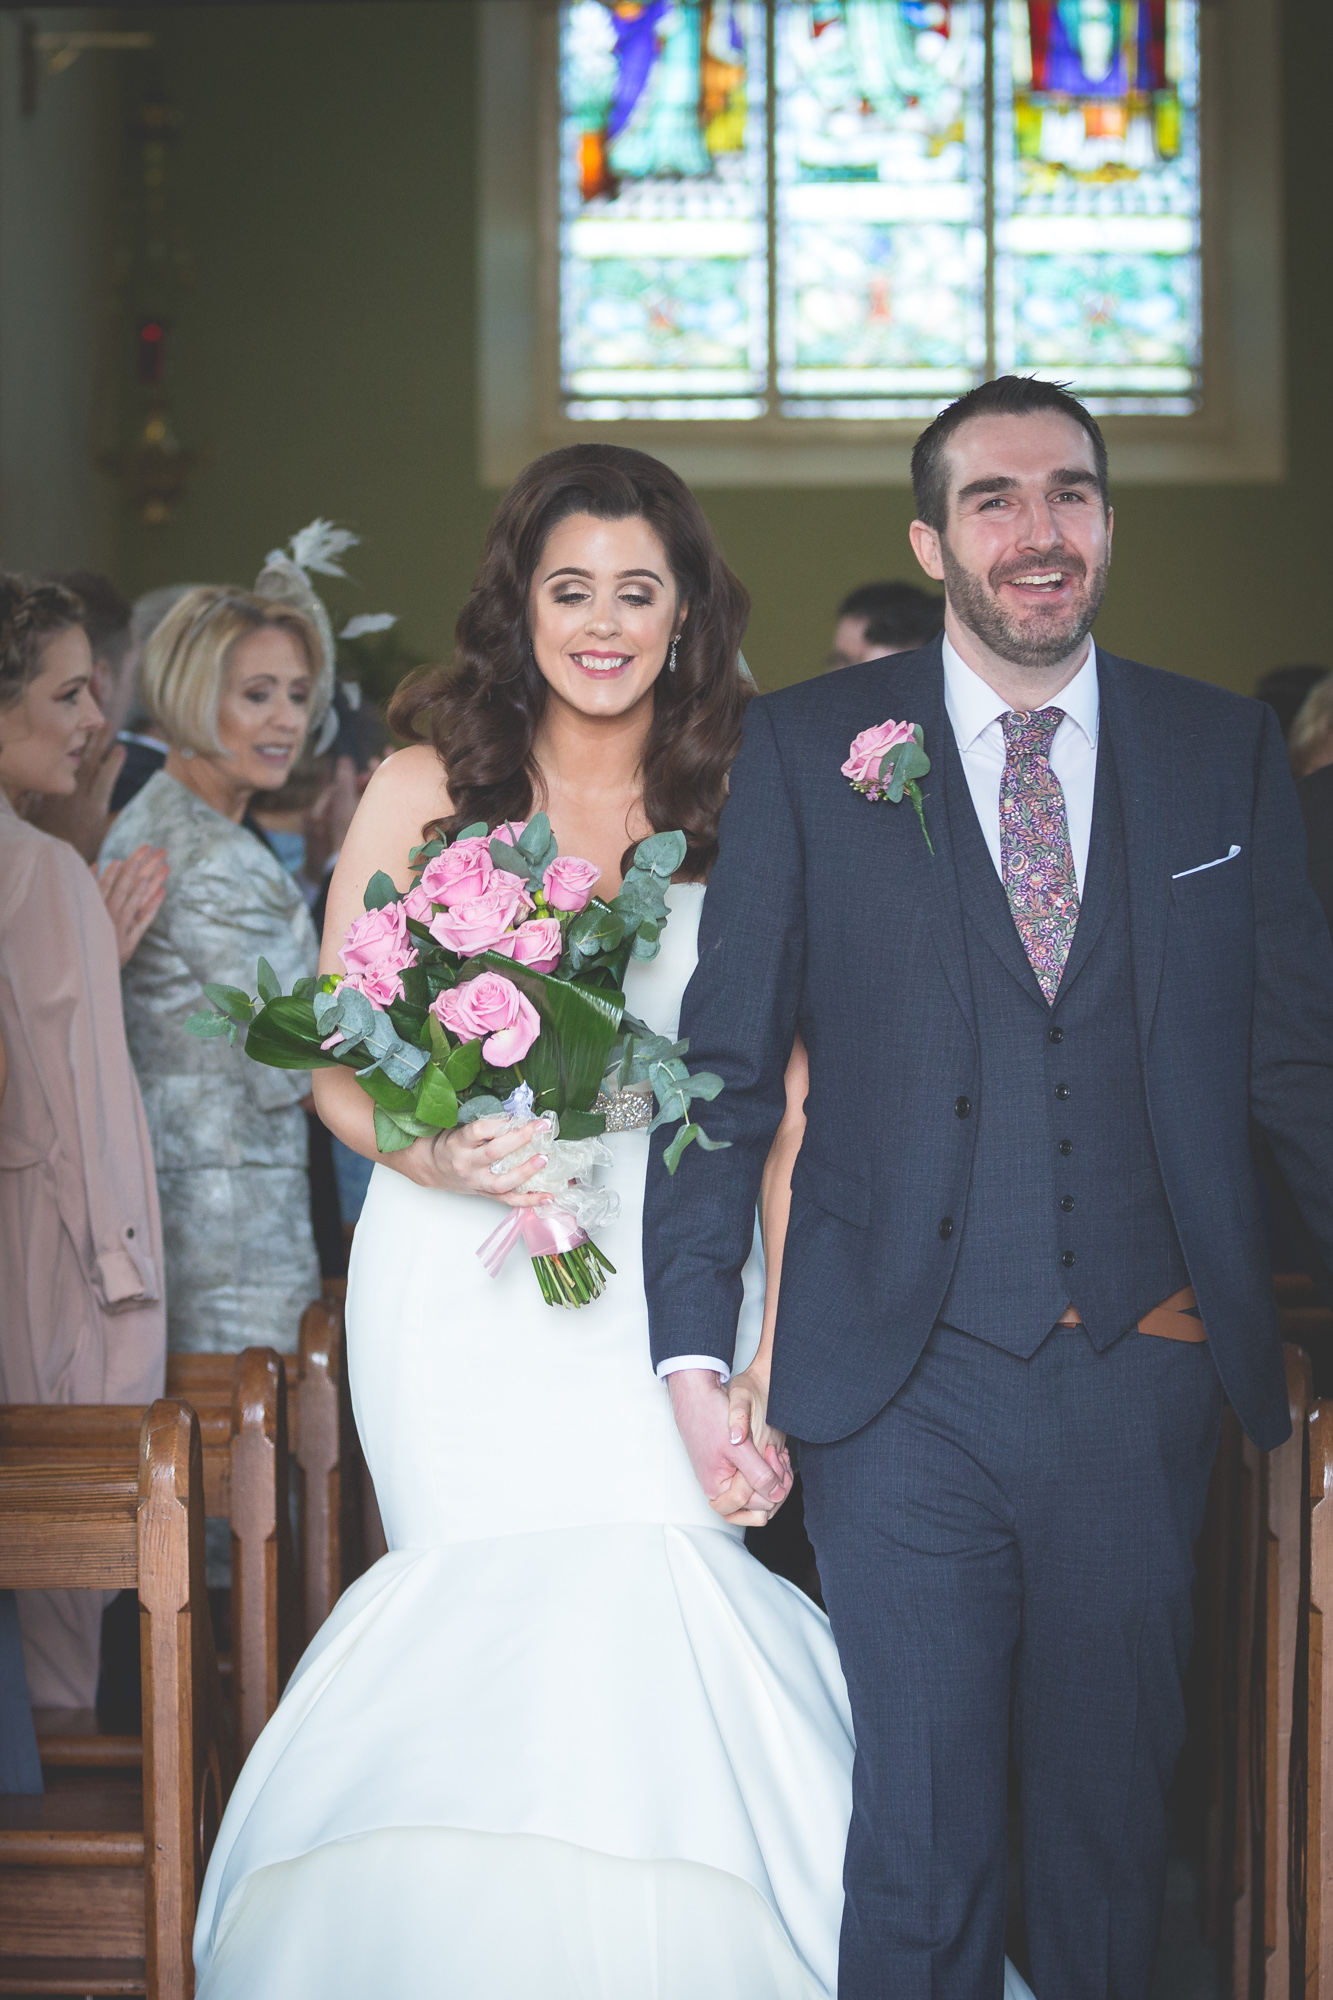 Francis&Oonagh-Ceremony-106.jpg